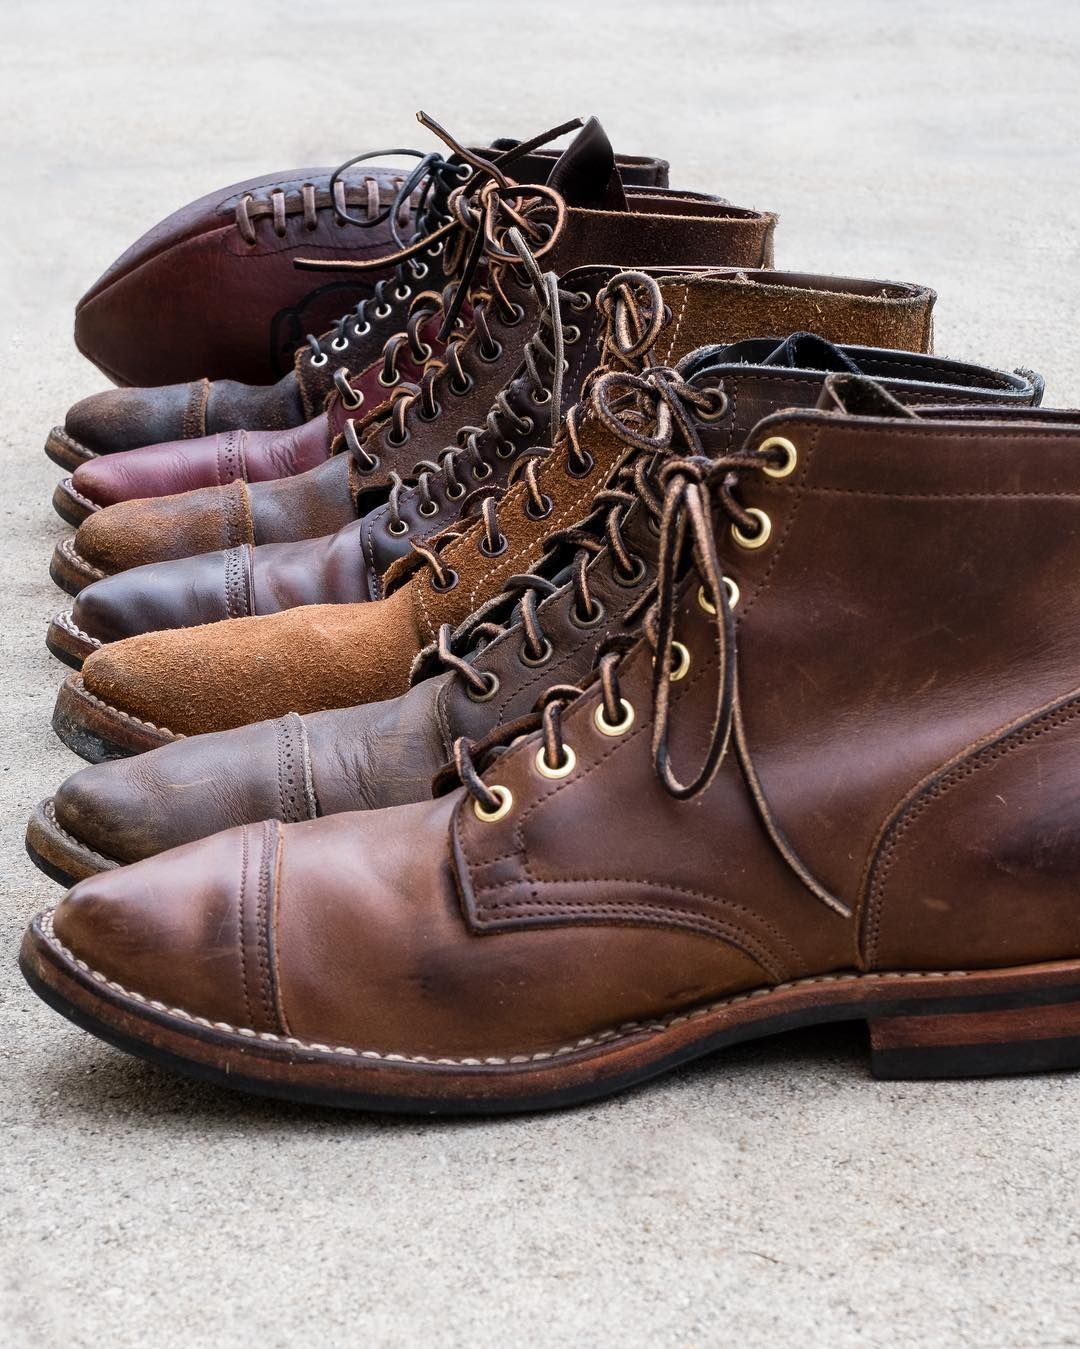 Men's fashion · This viberg boot collection ...